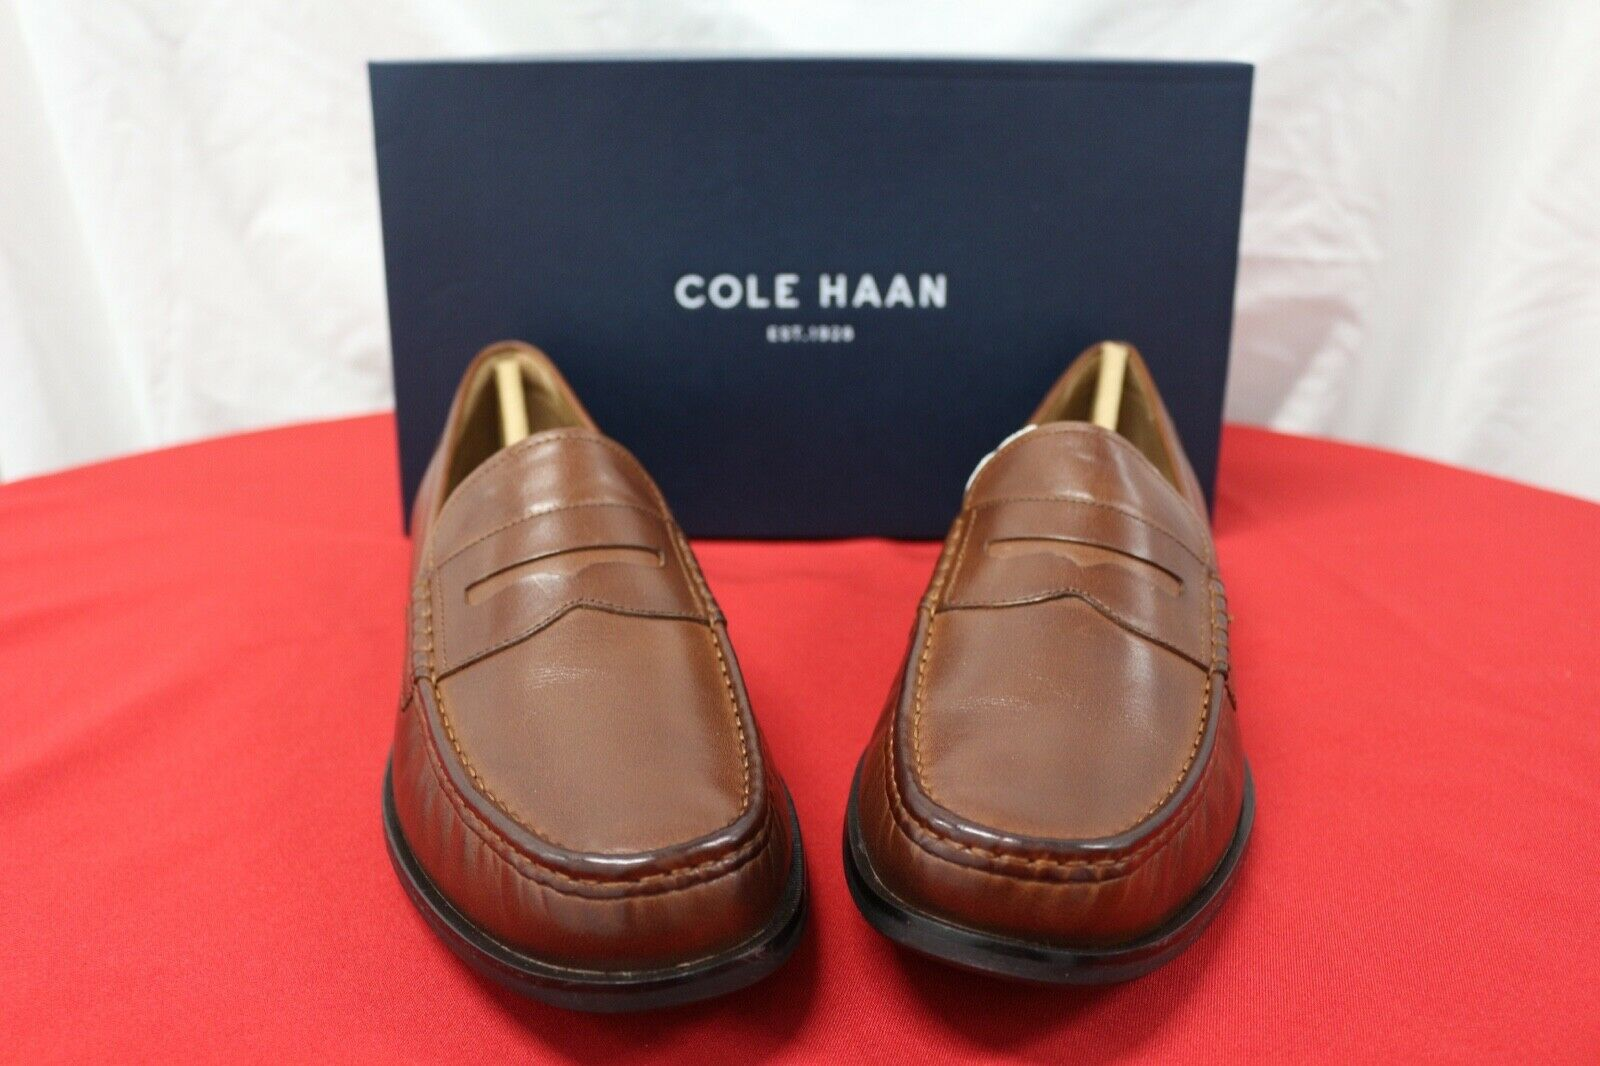 Cole Haan Men's Pinch Friday Penny Loafer, Woodbury Handstain, 9.5 M